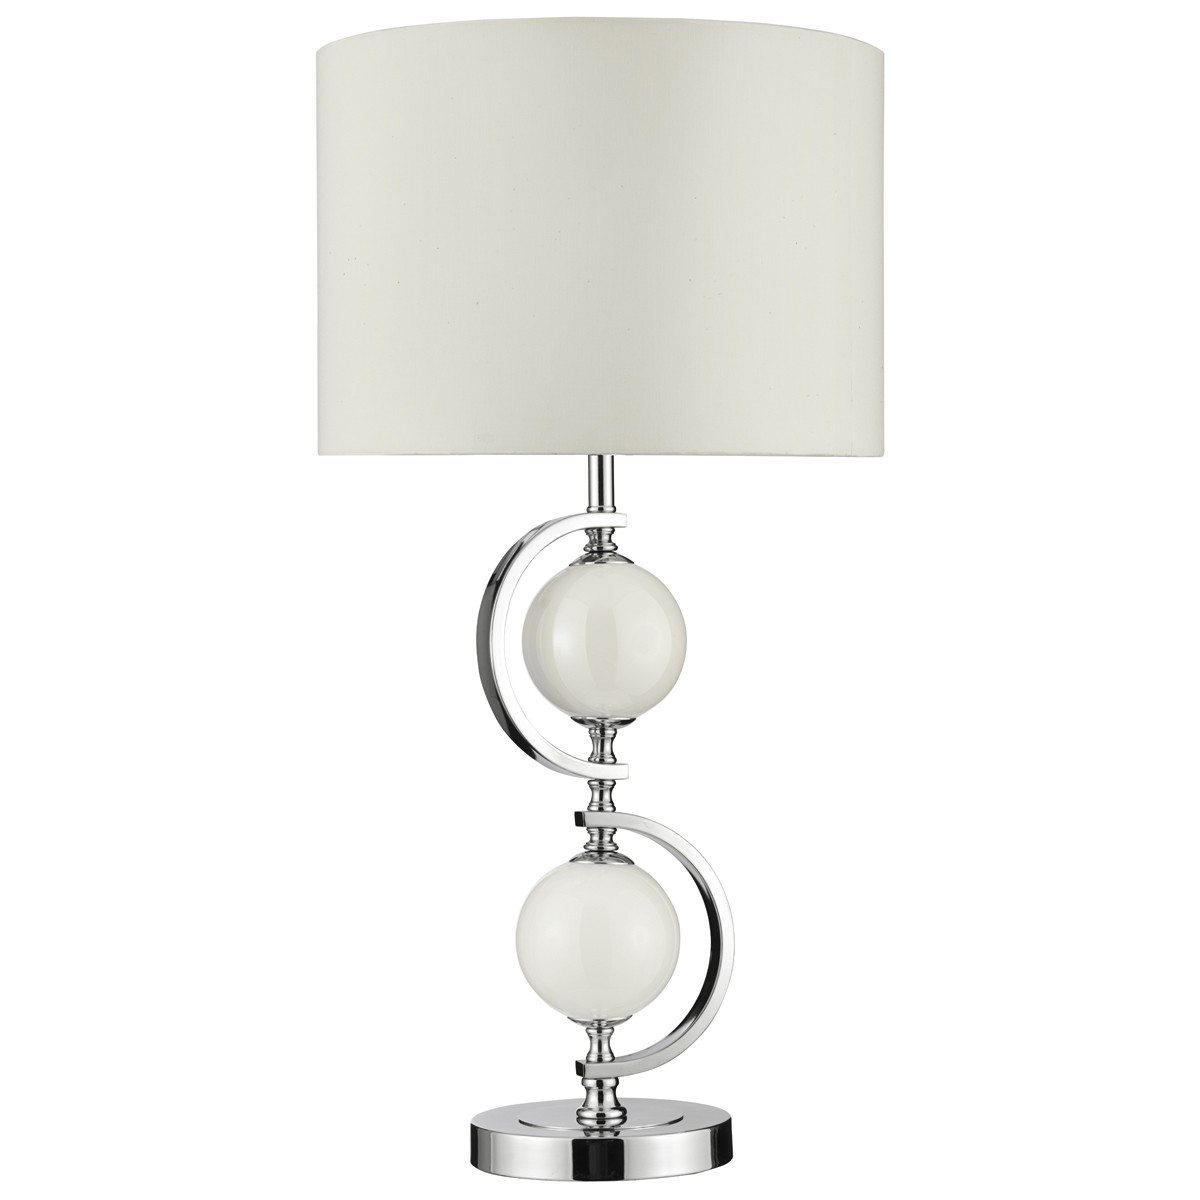 Bellis ii chrome table lamp with clear glass shade 4571cc chrome table lamp with cream glass balls drum shade 1965wh aloadofball Image collections